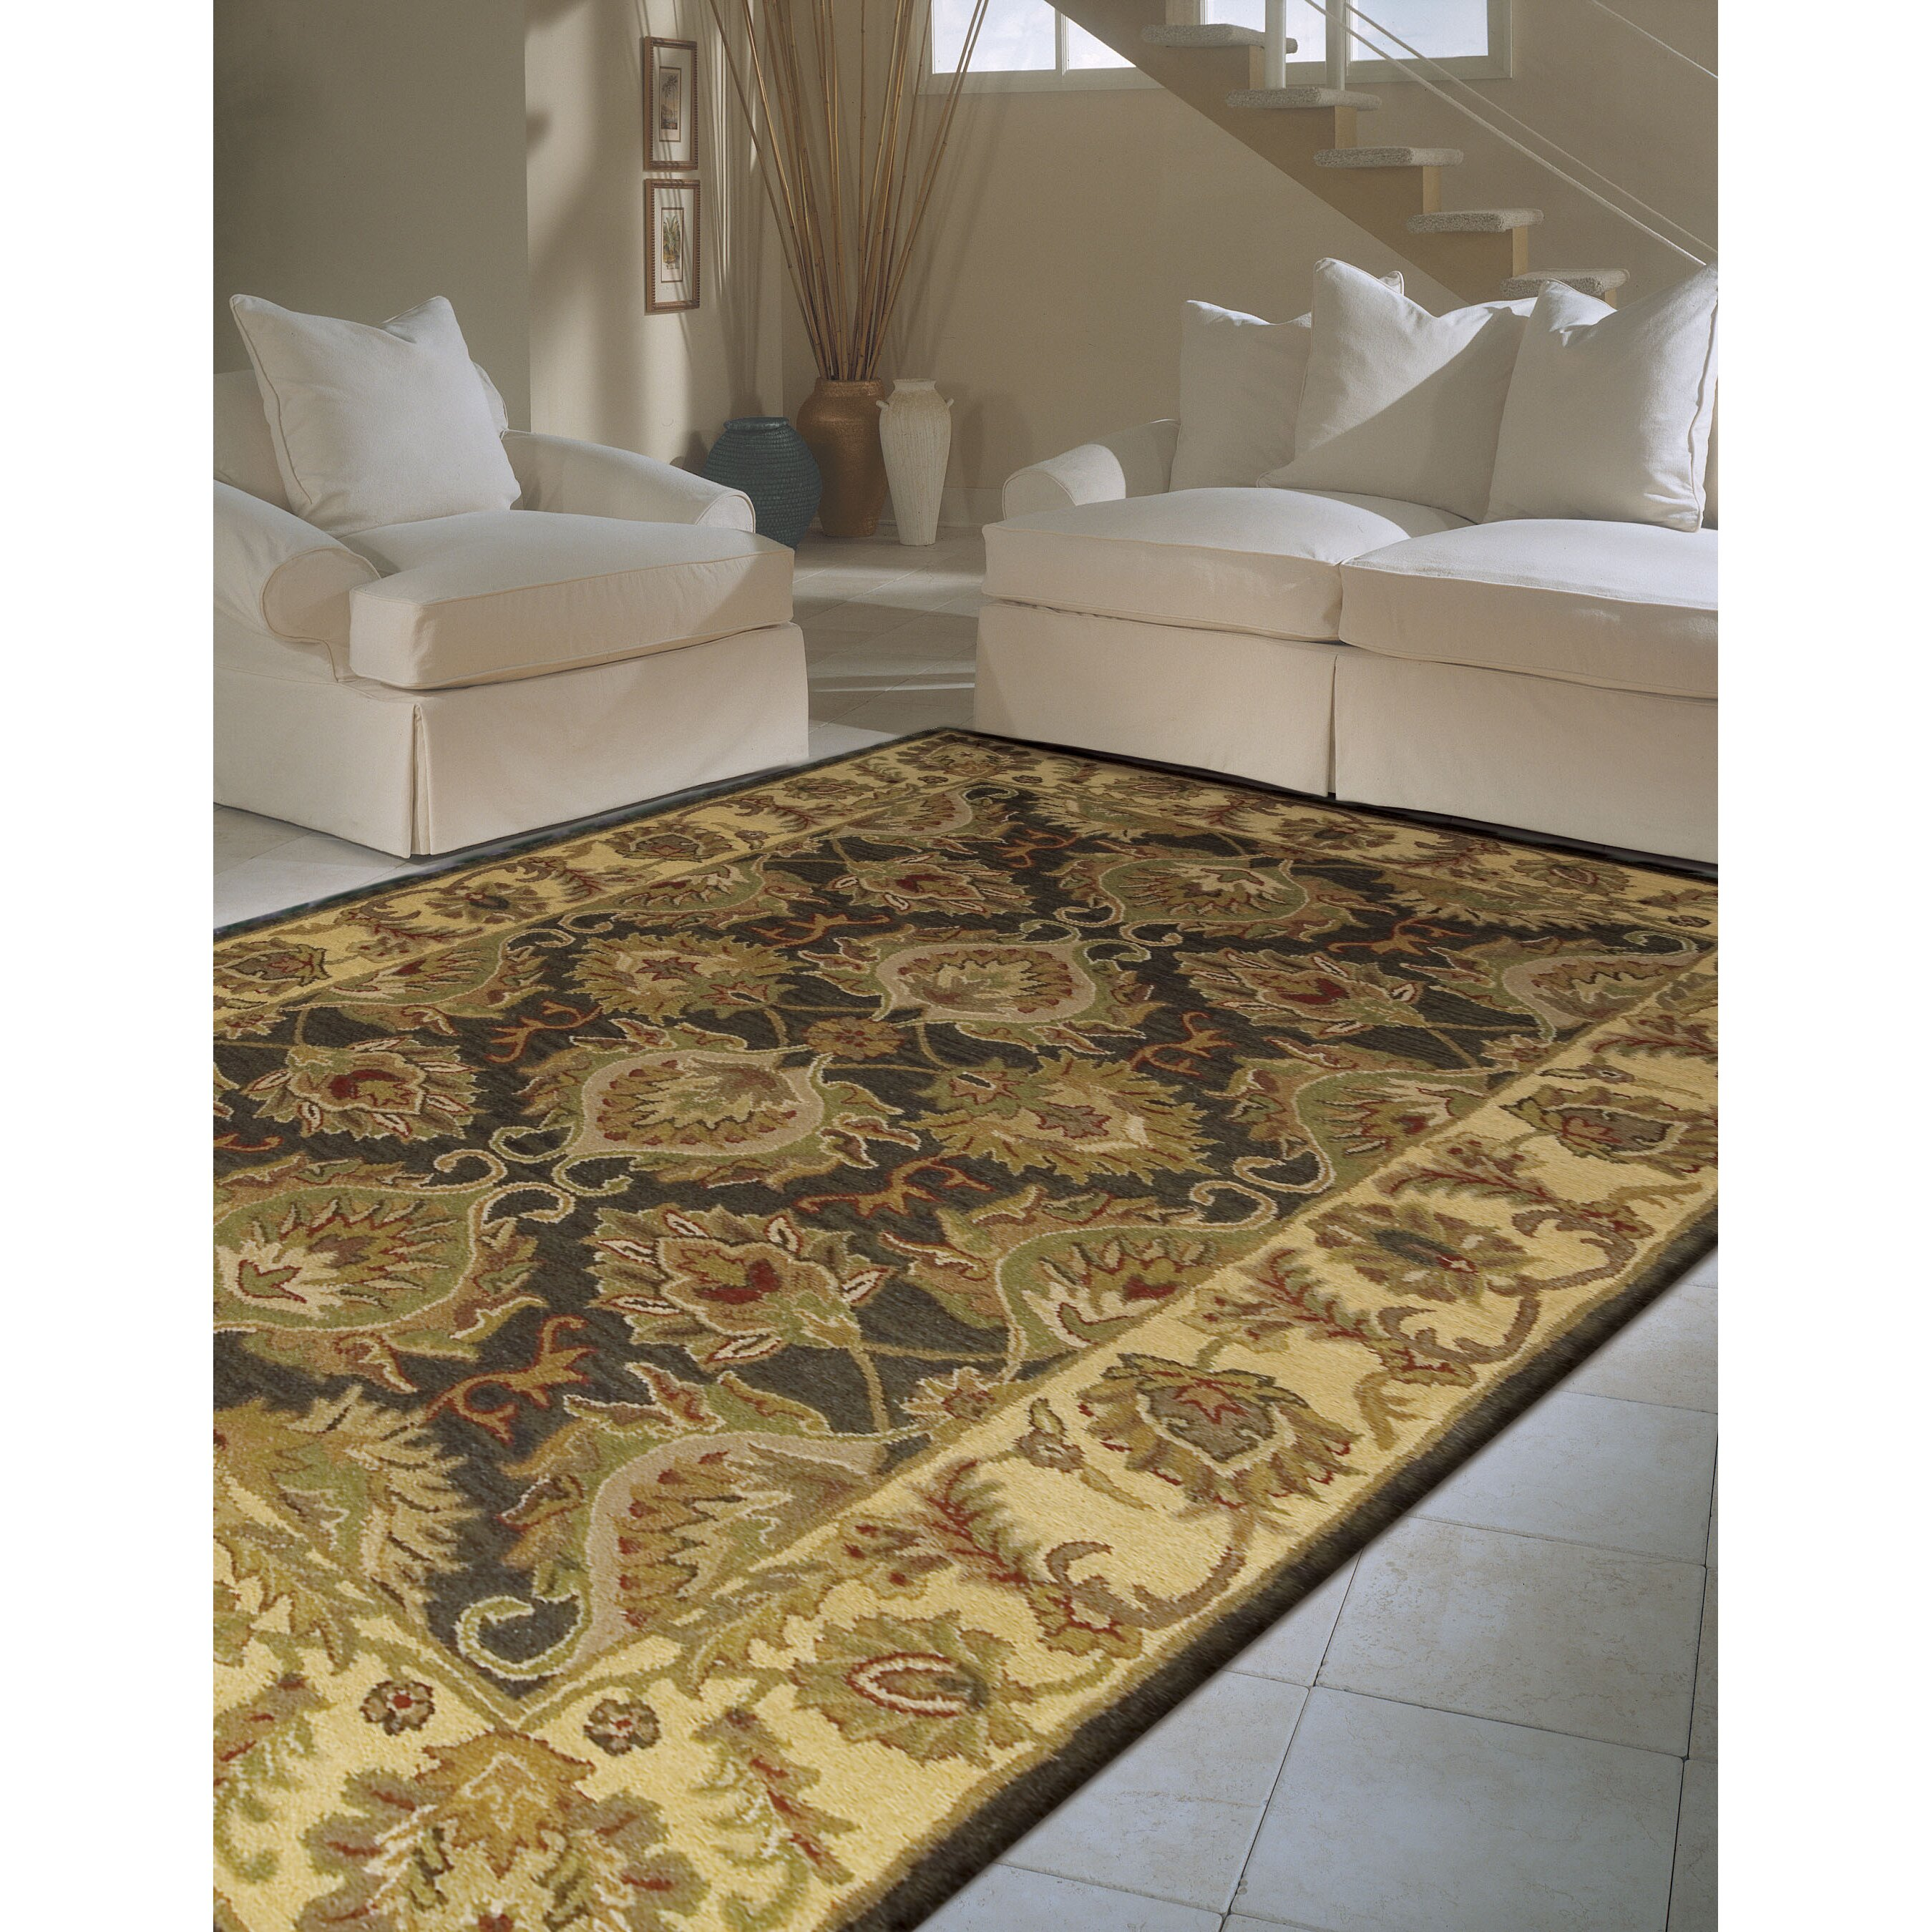 Area Rugs From India: India House Green Area Rug